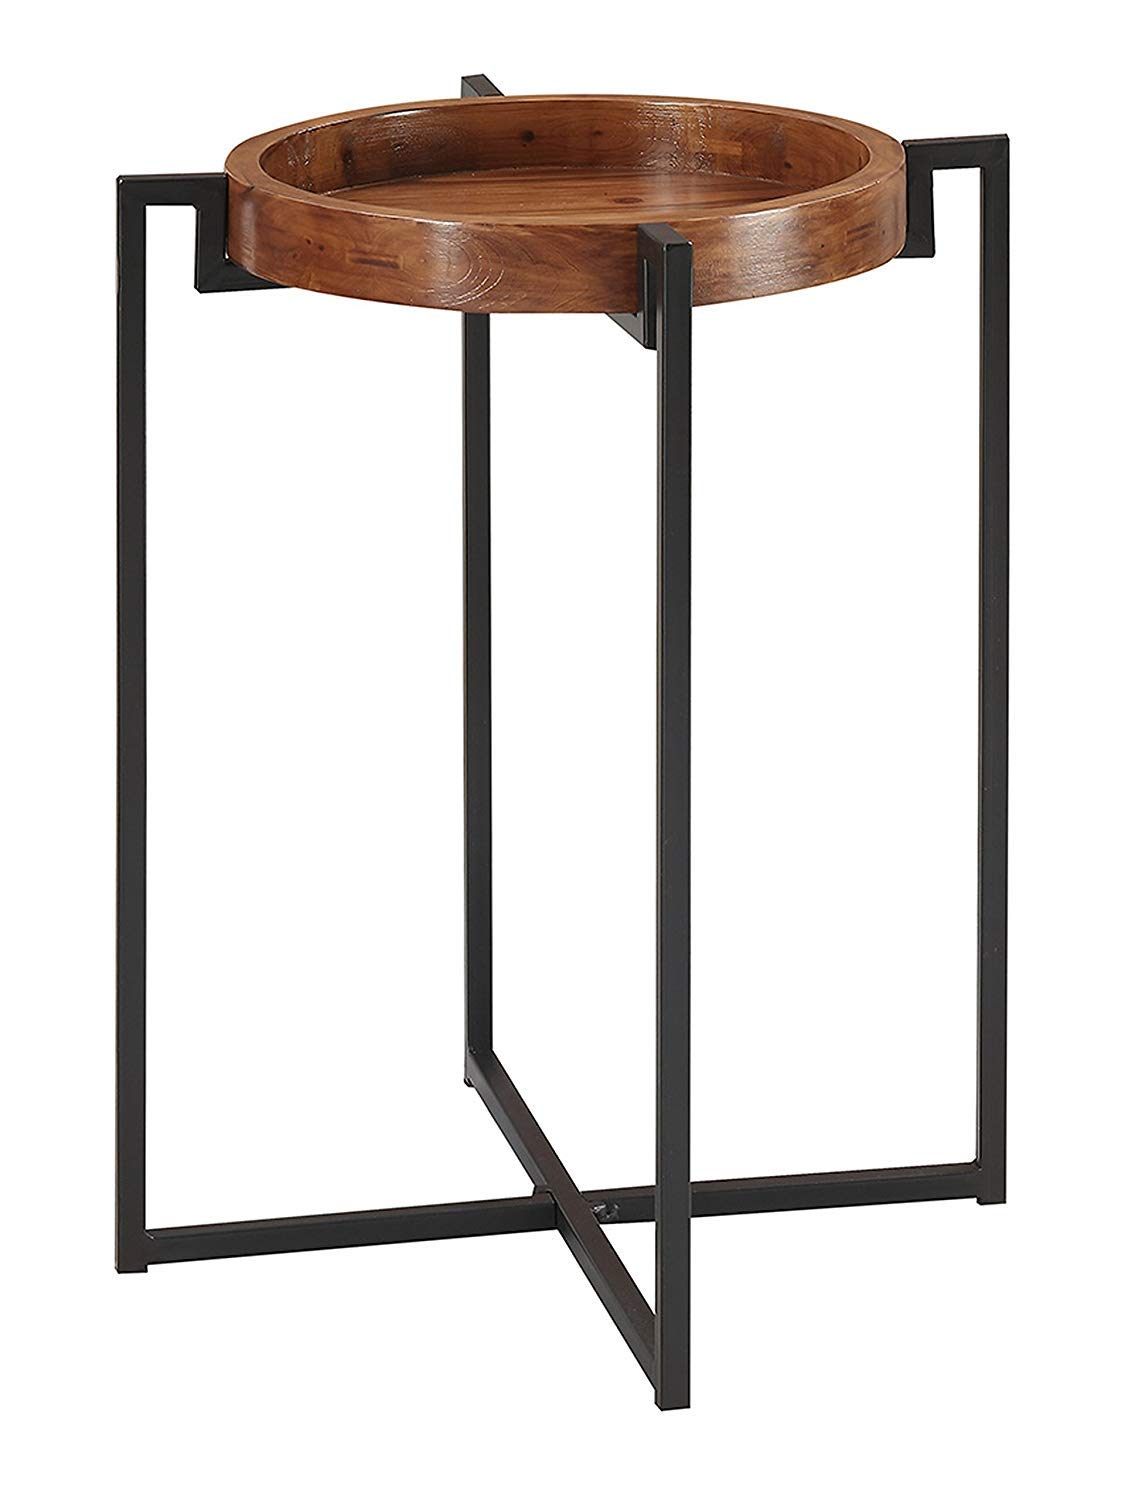 Convenience Concepts 227265 Nordic Round Tray End Table, Dark Walnut Black